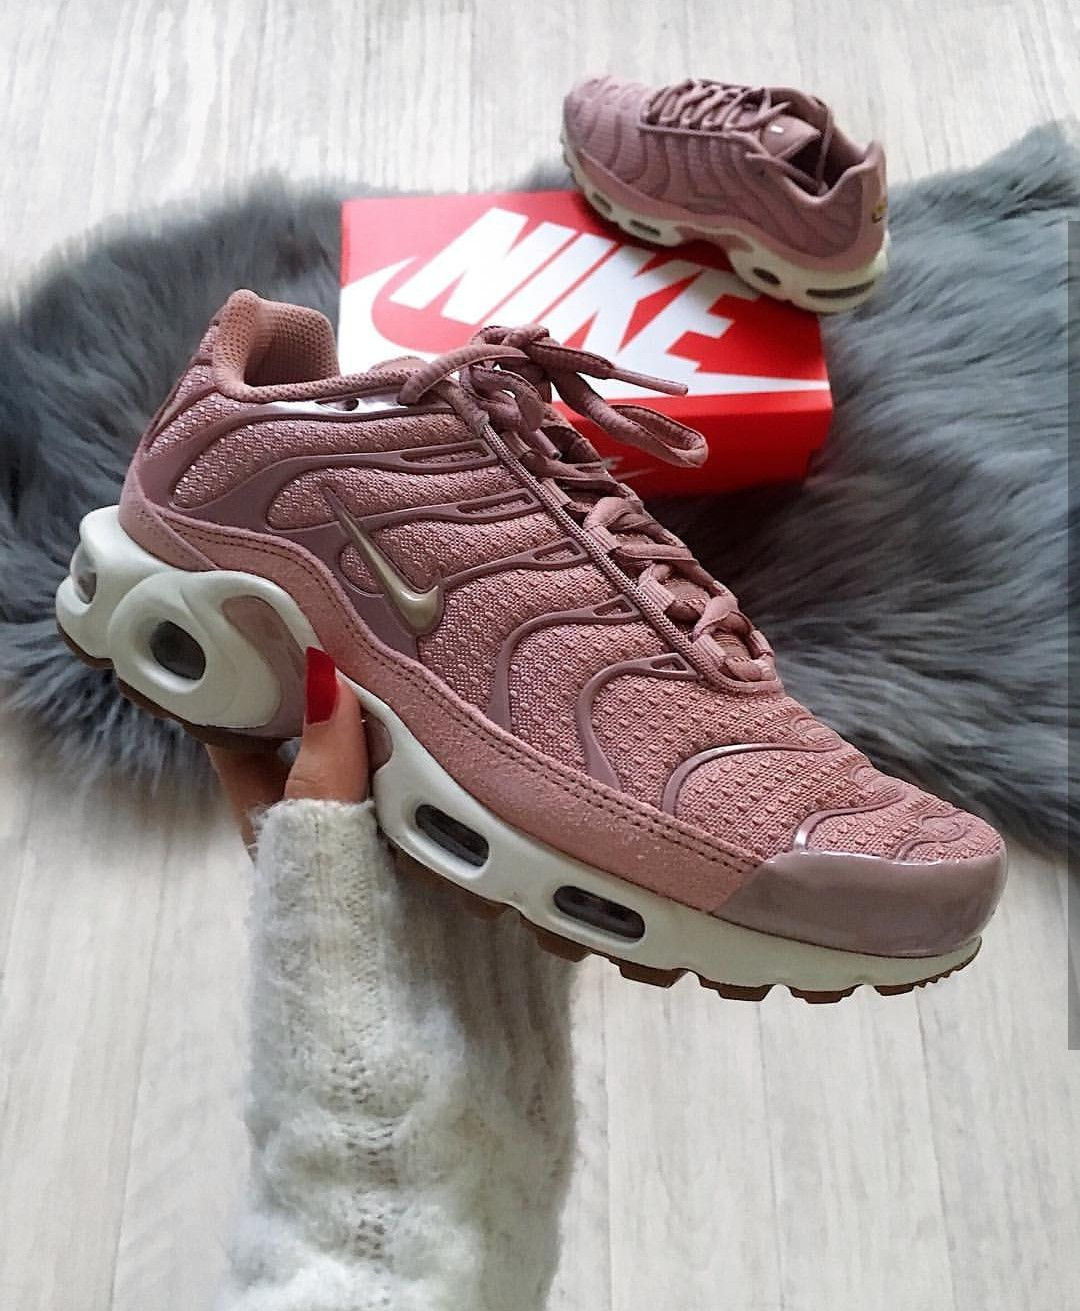 size 40 9189d 32ff9 ... sweden nike air max 95 rosa white foto nawellleee instagram pretty shoes  5d25c 86cf0